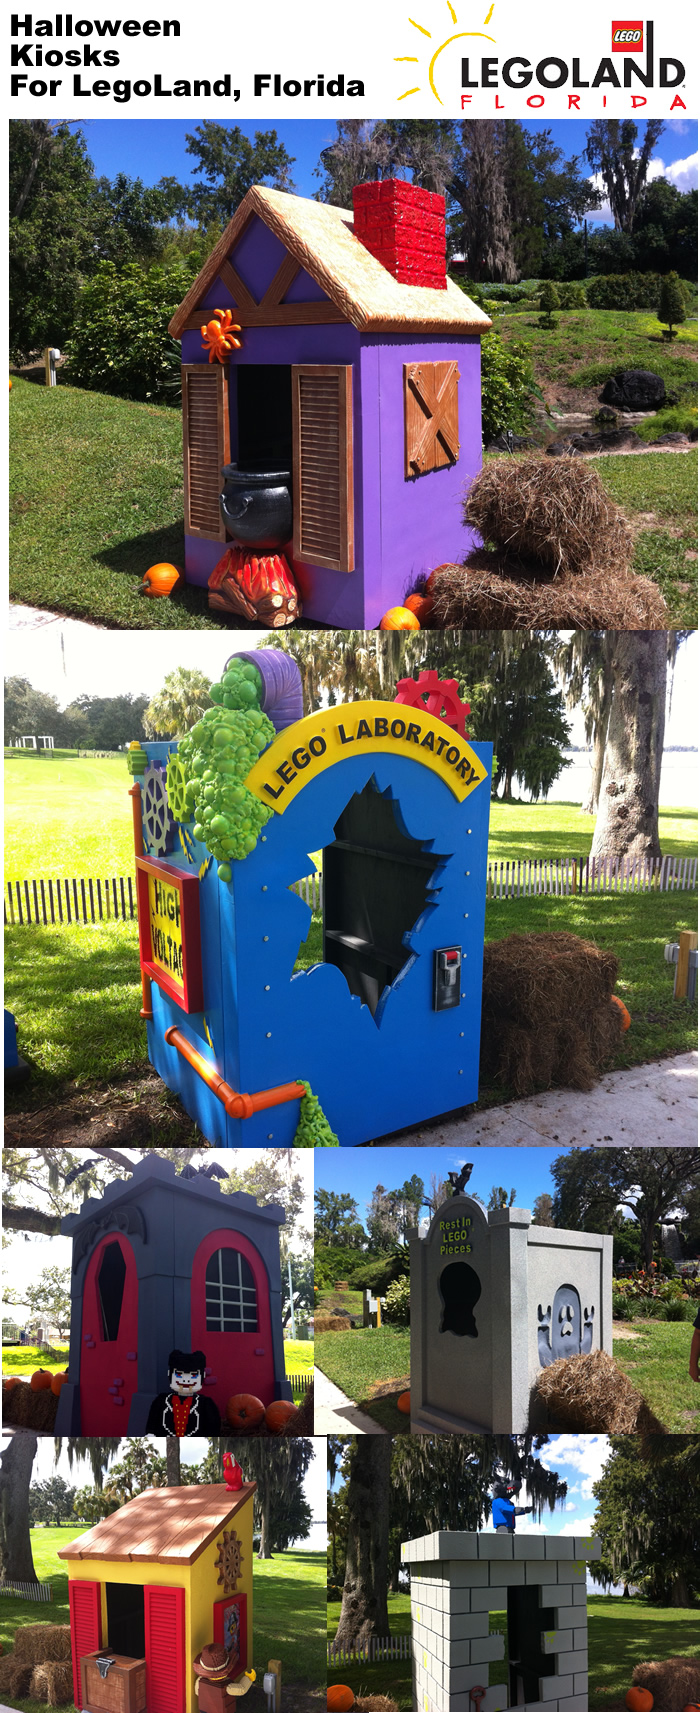 LEGOLAND Florida Halloween kiosks for kids to receive candy from staff in costume.